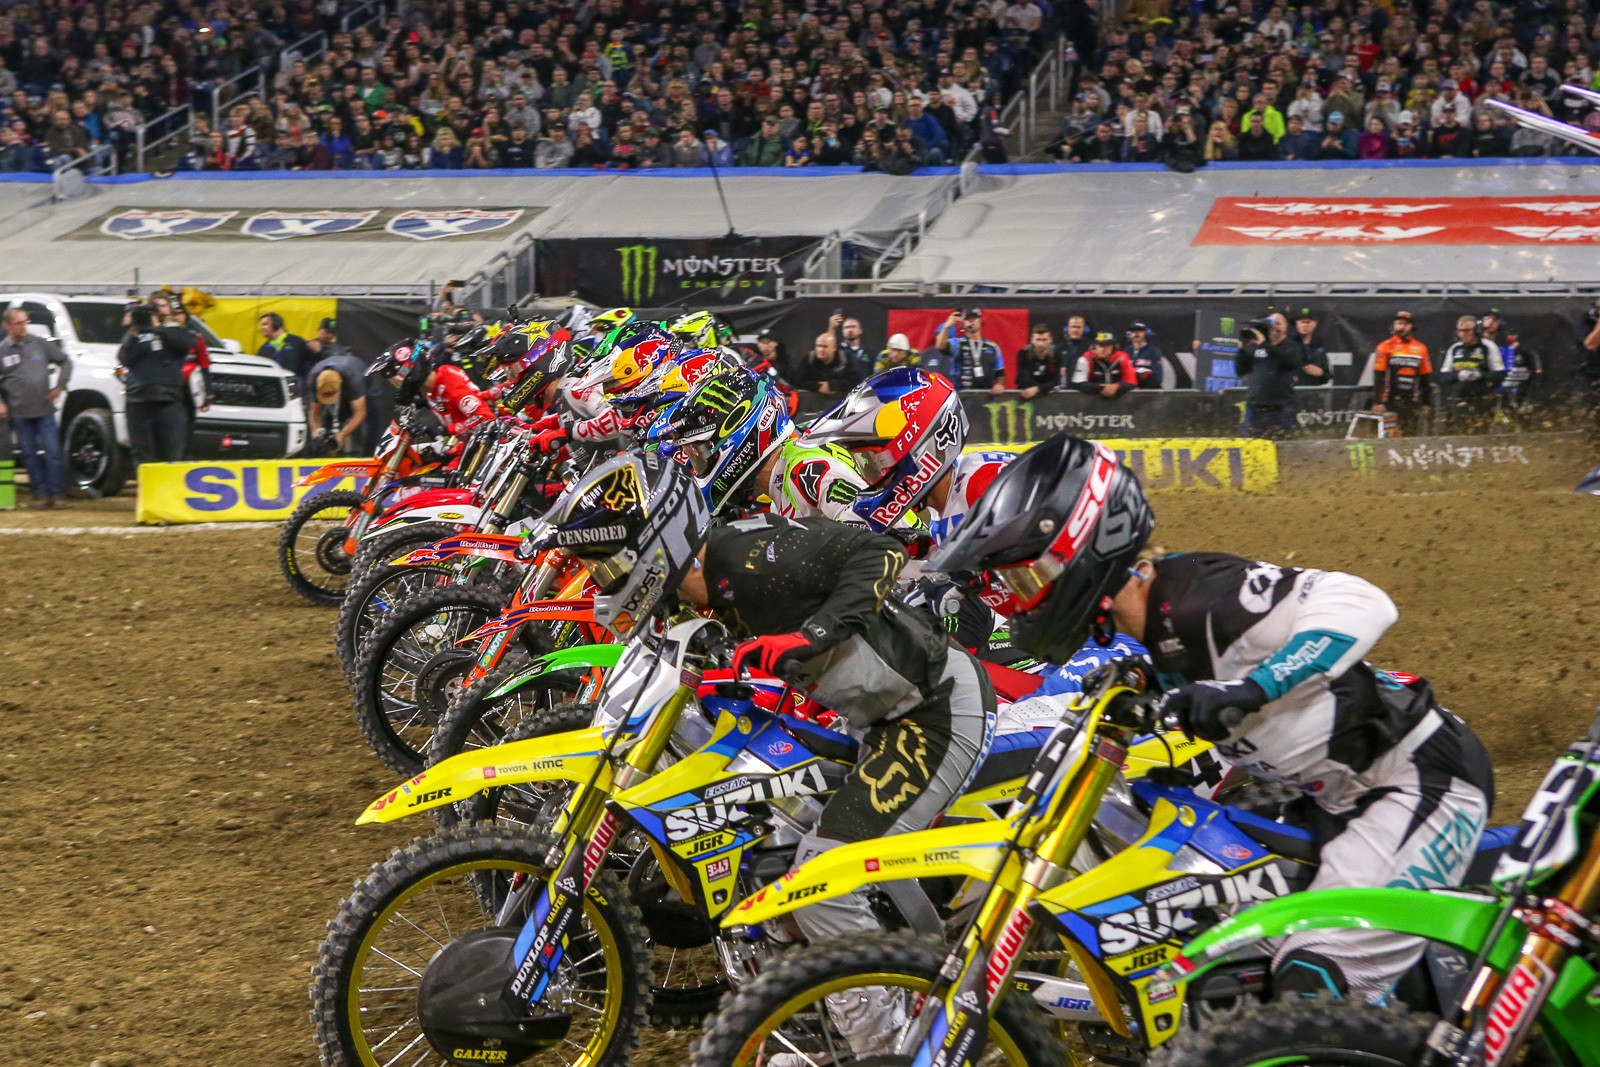 Much of the buzz before the race centered around the need for a good start, and the possibility of first-turn carnage. Fortunately, the crashes never really materialized. Chad Reed looks like he's got the jump here, but by the time they exited the first turn, it was Justin Brayton out front, starting from way on the outer half of the gate.